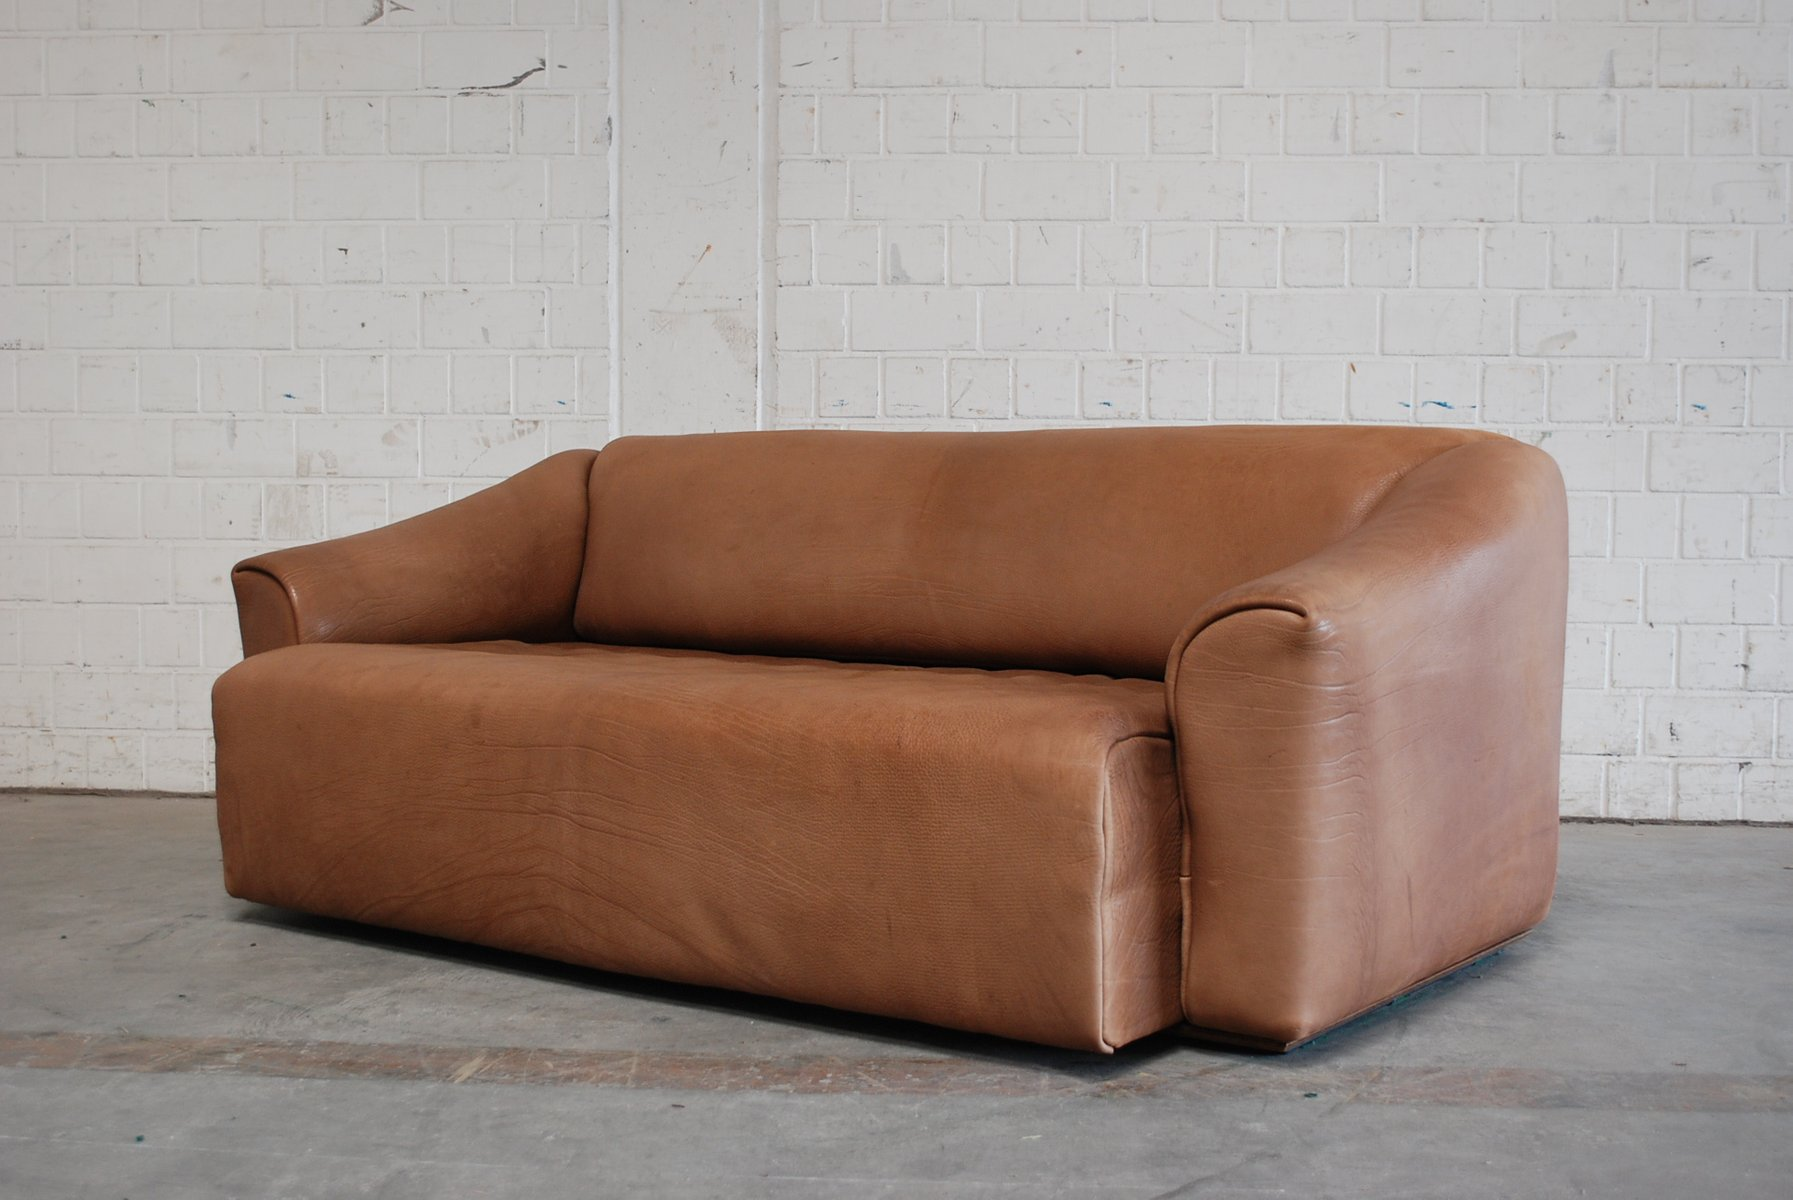 Vintage DS-47 Three-Seater Cognac Leather Sofa From De Sede